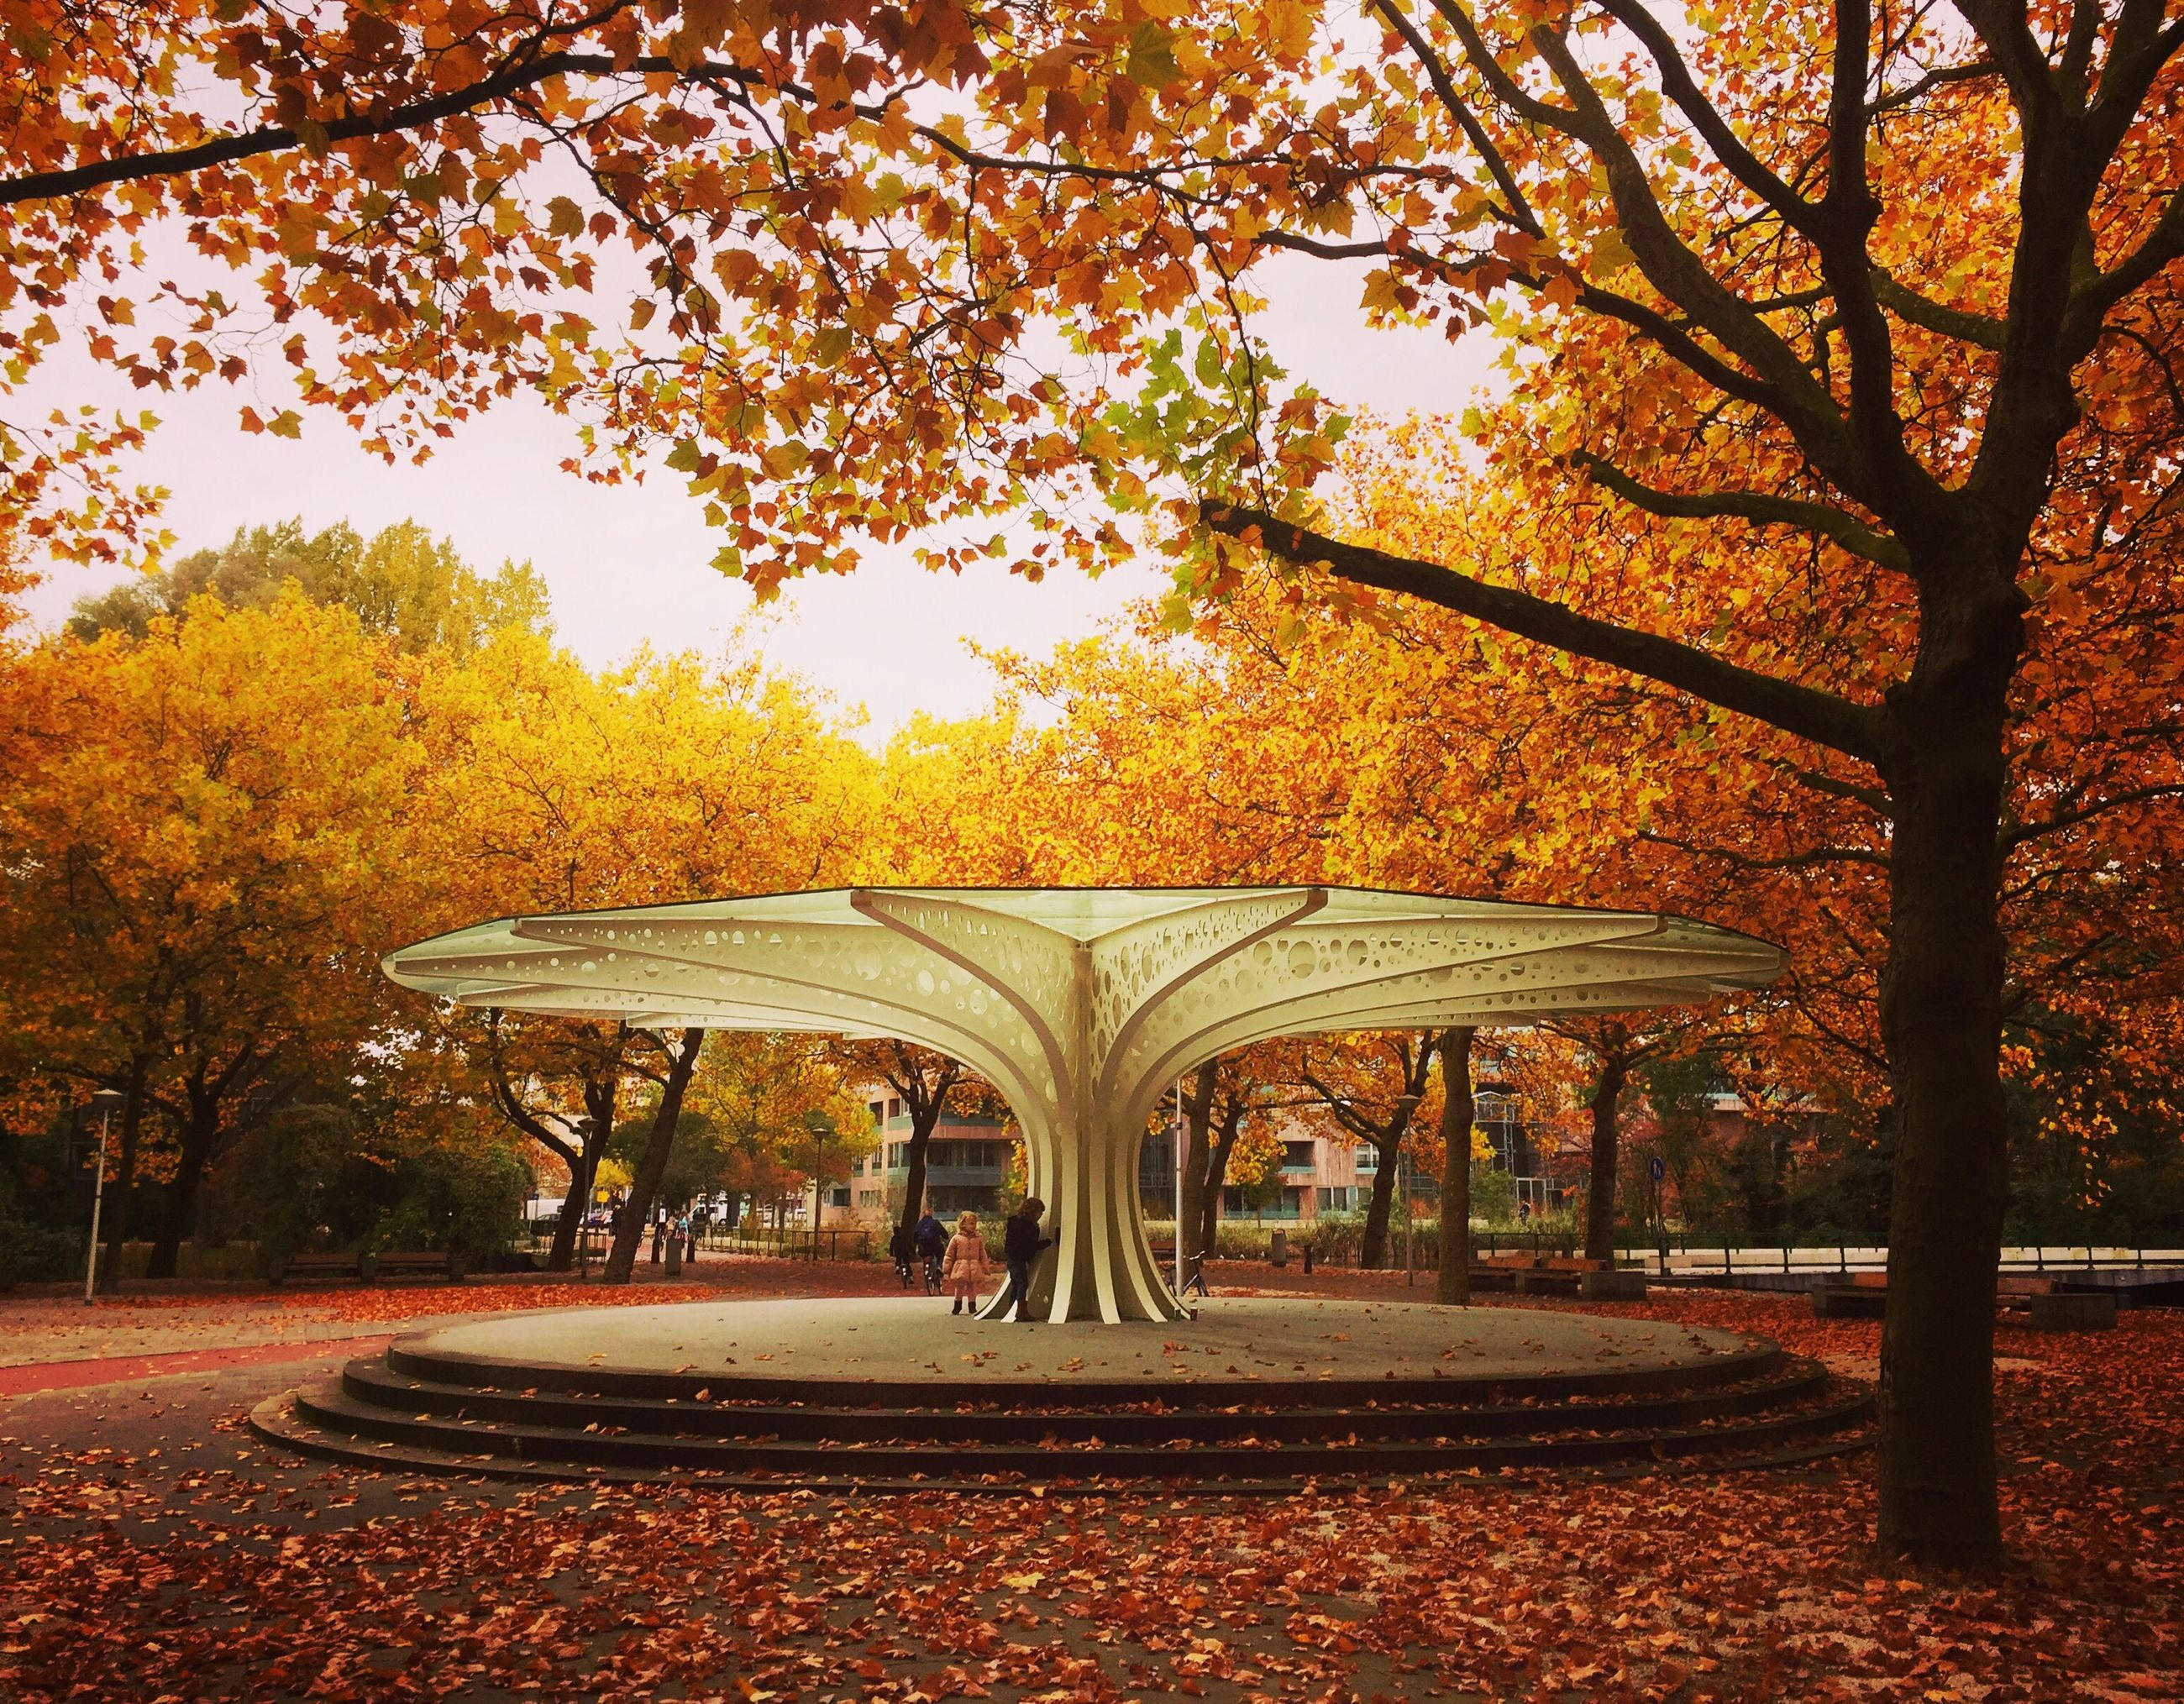 tree, autumn, yellow, outdoors, no people, sunset, building exterior, architecture, pavilion, nature, sky, day